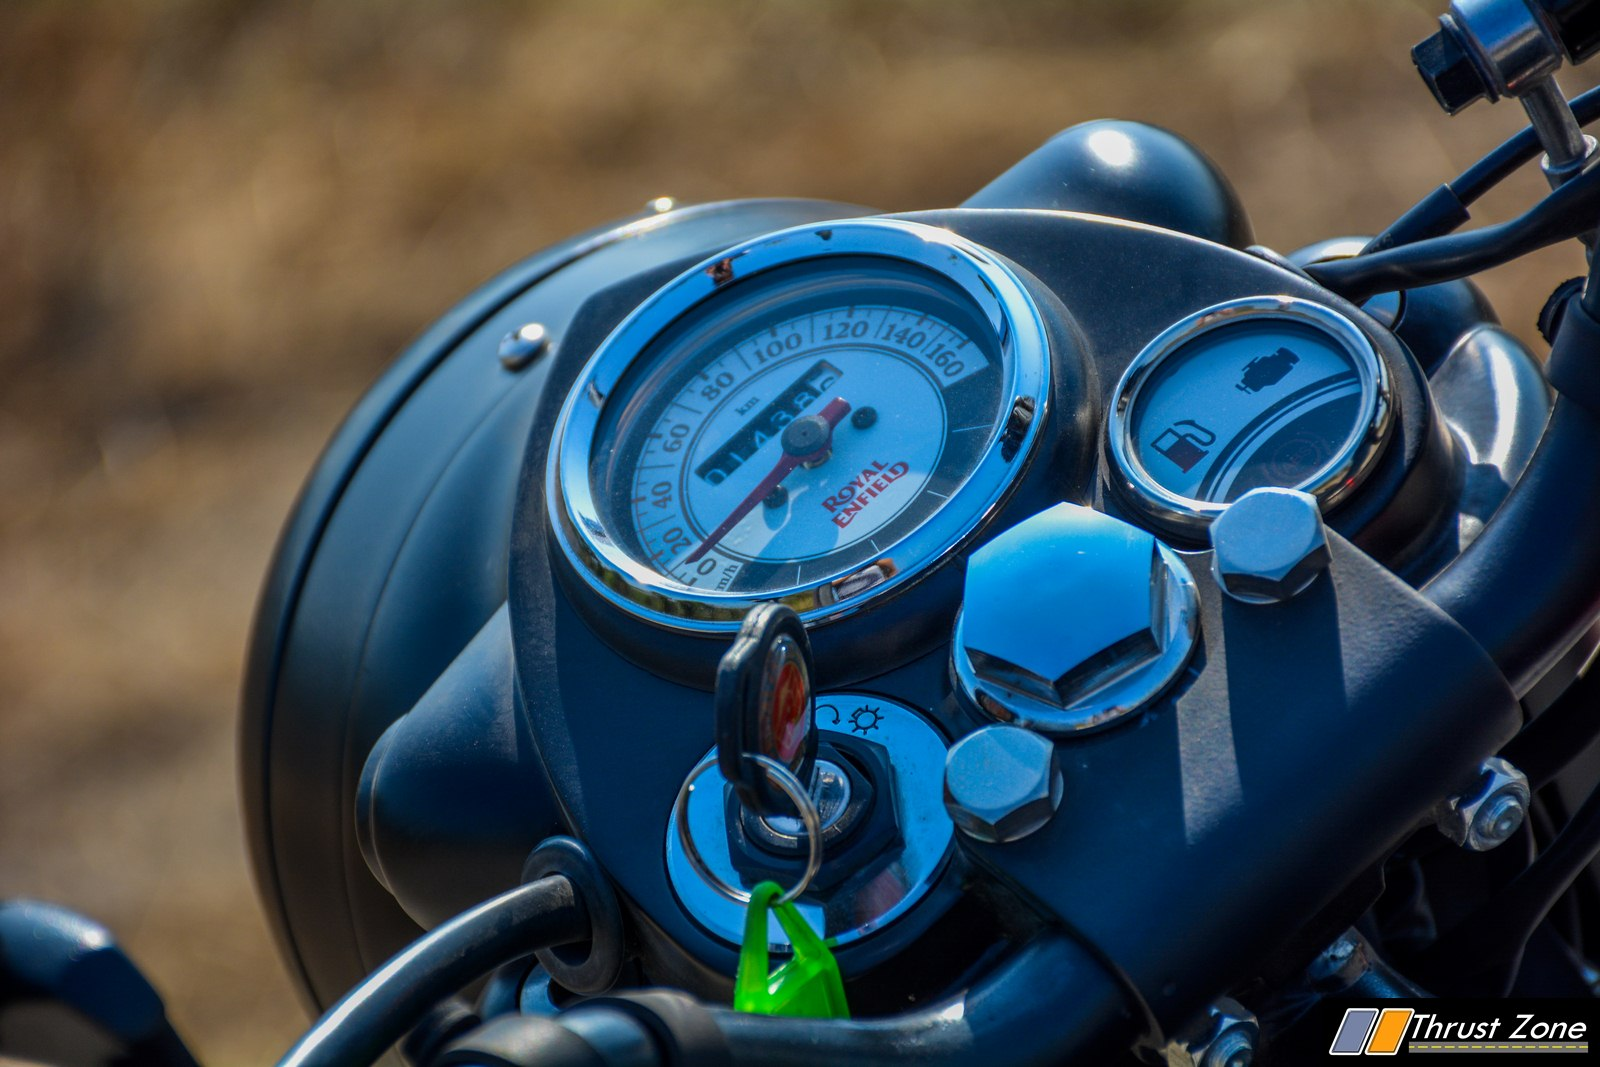 2020-Bs6-RoyalEnfield-Classic-350-Review-15